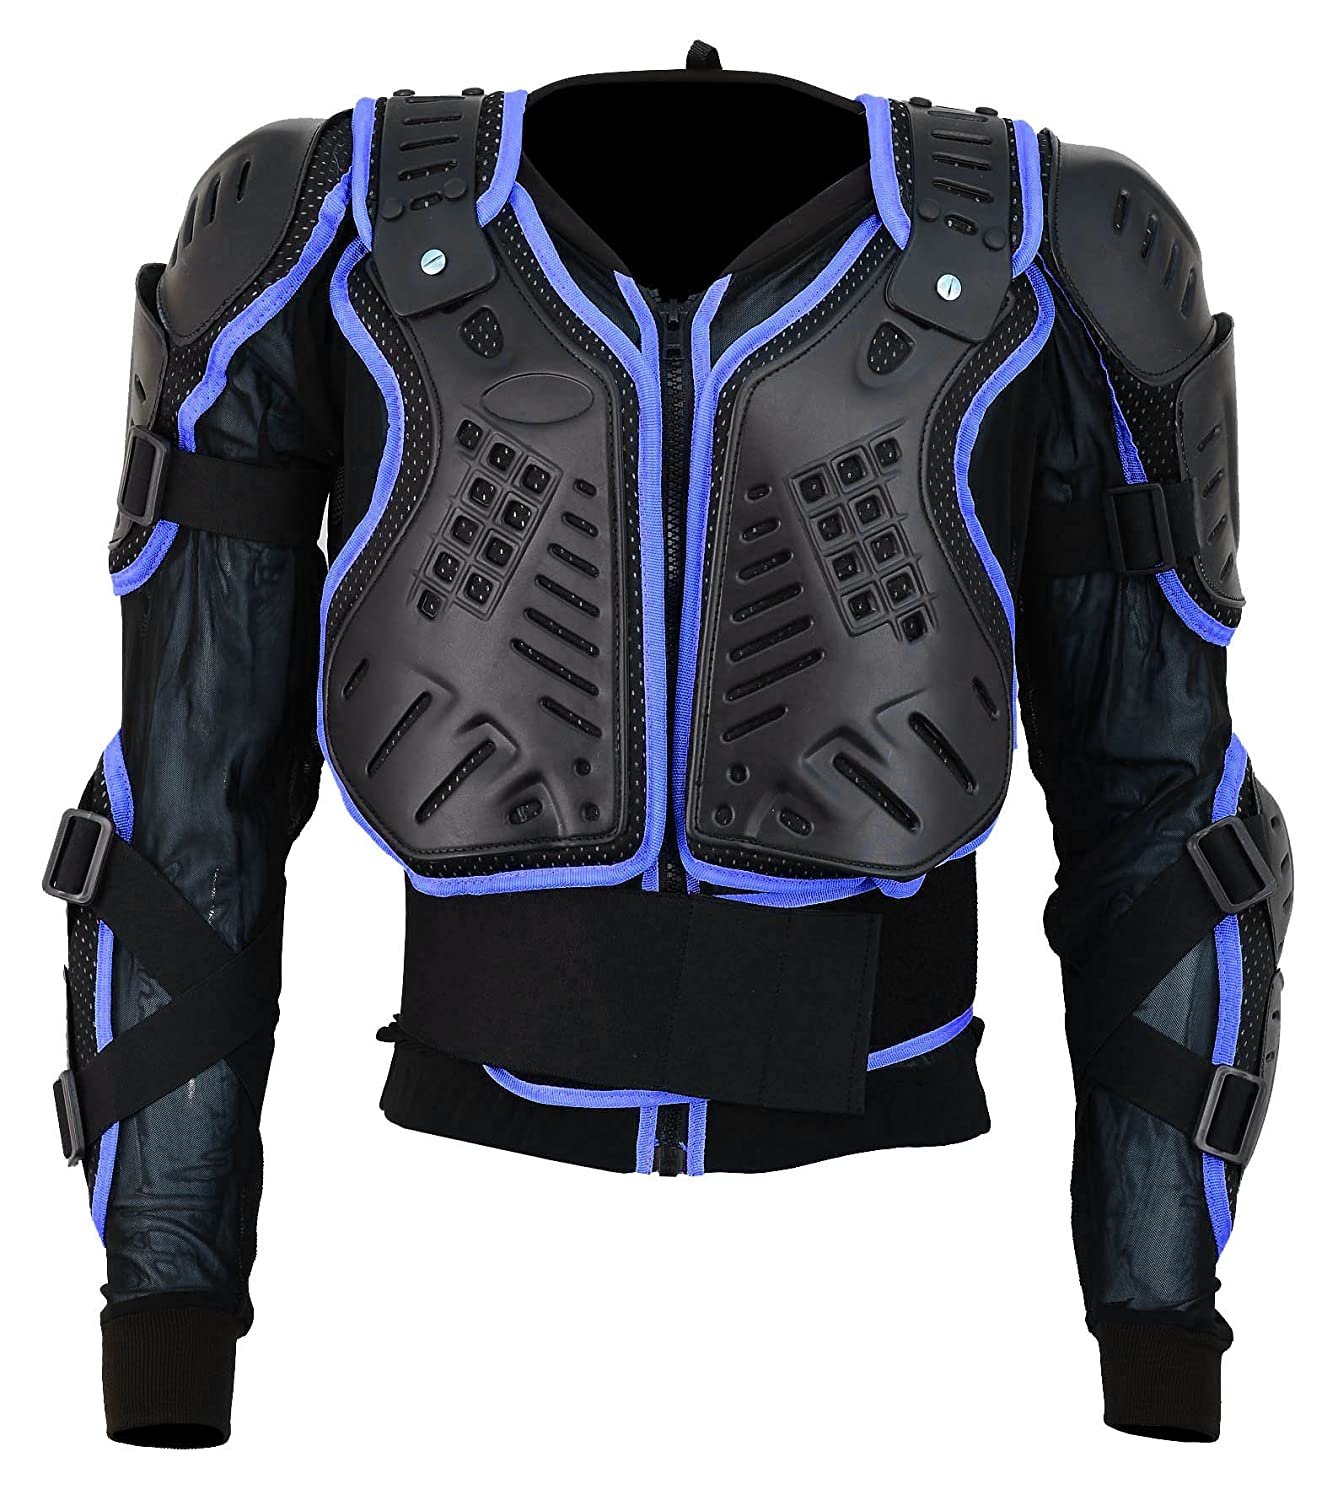 PROFIRST BA-002 Motocross Motorbike Motorcyle Protection Jacket Body Armour Mountain Cycling Riding Skating Snowboarding Track Crash Guard CE Approved